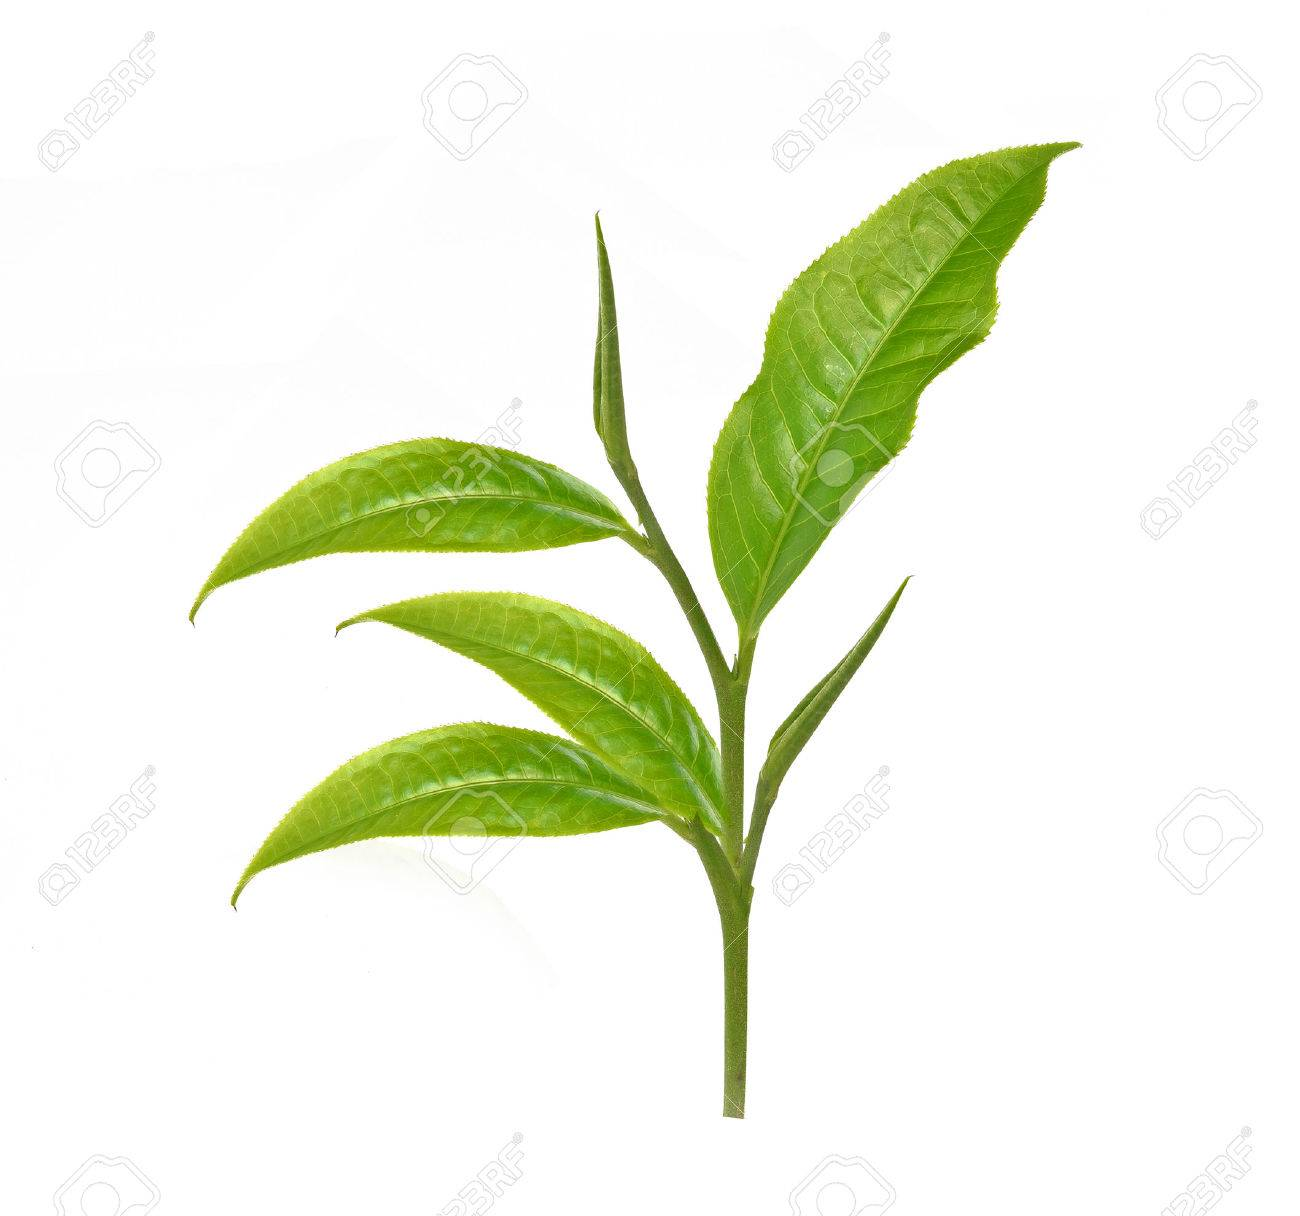 43054246-green-tea-leaf-dried-tea-leaves-in-wooden-bowls-isolated-on-white-background